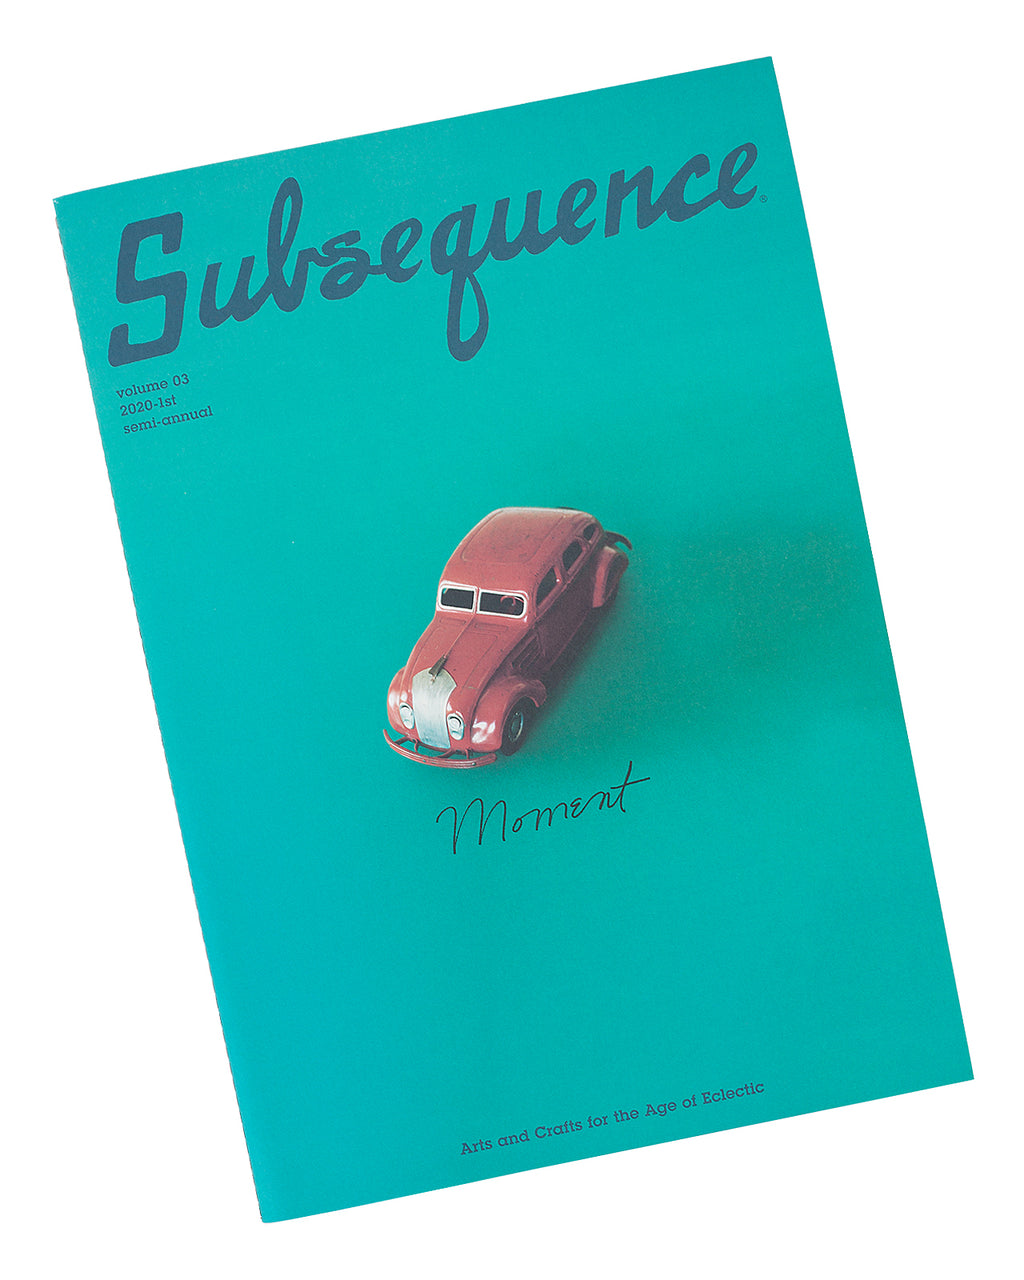 Subsequence Magazine, Vol 3